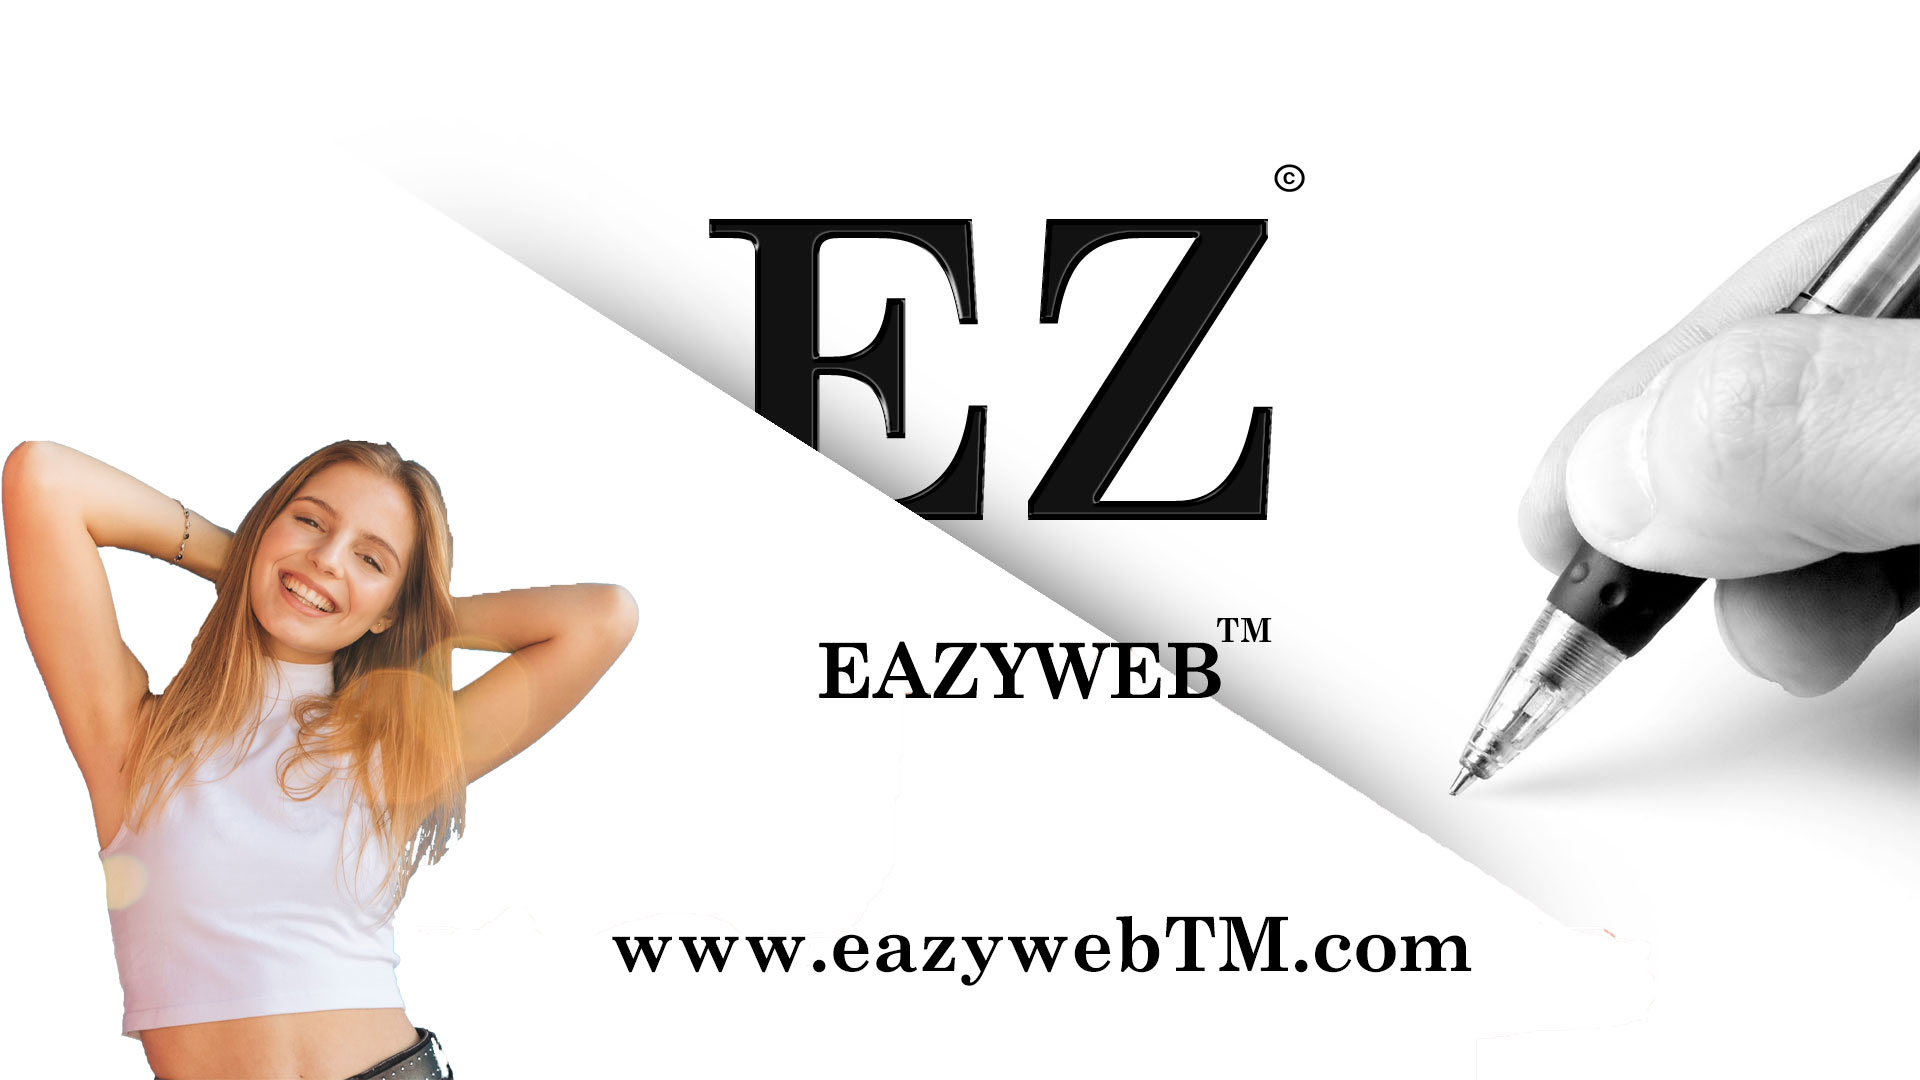 EazywebTM helps you understand why your competitors rank so high and what you need to do